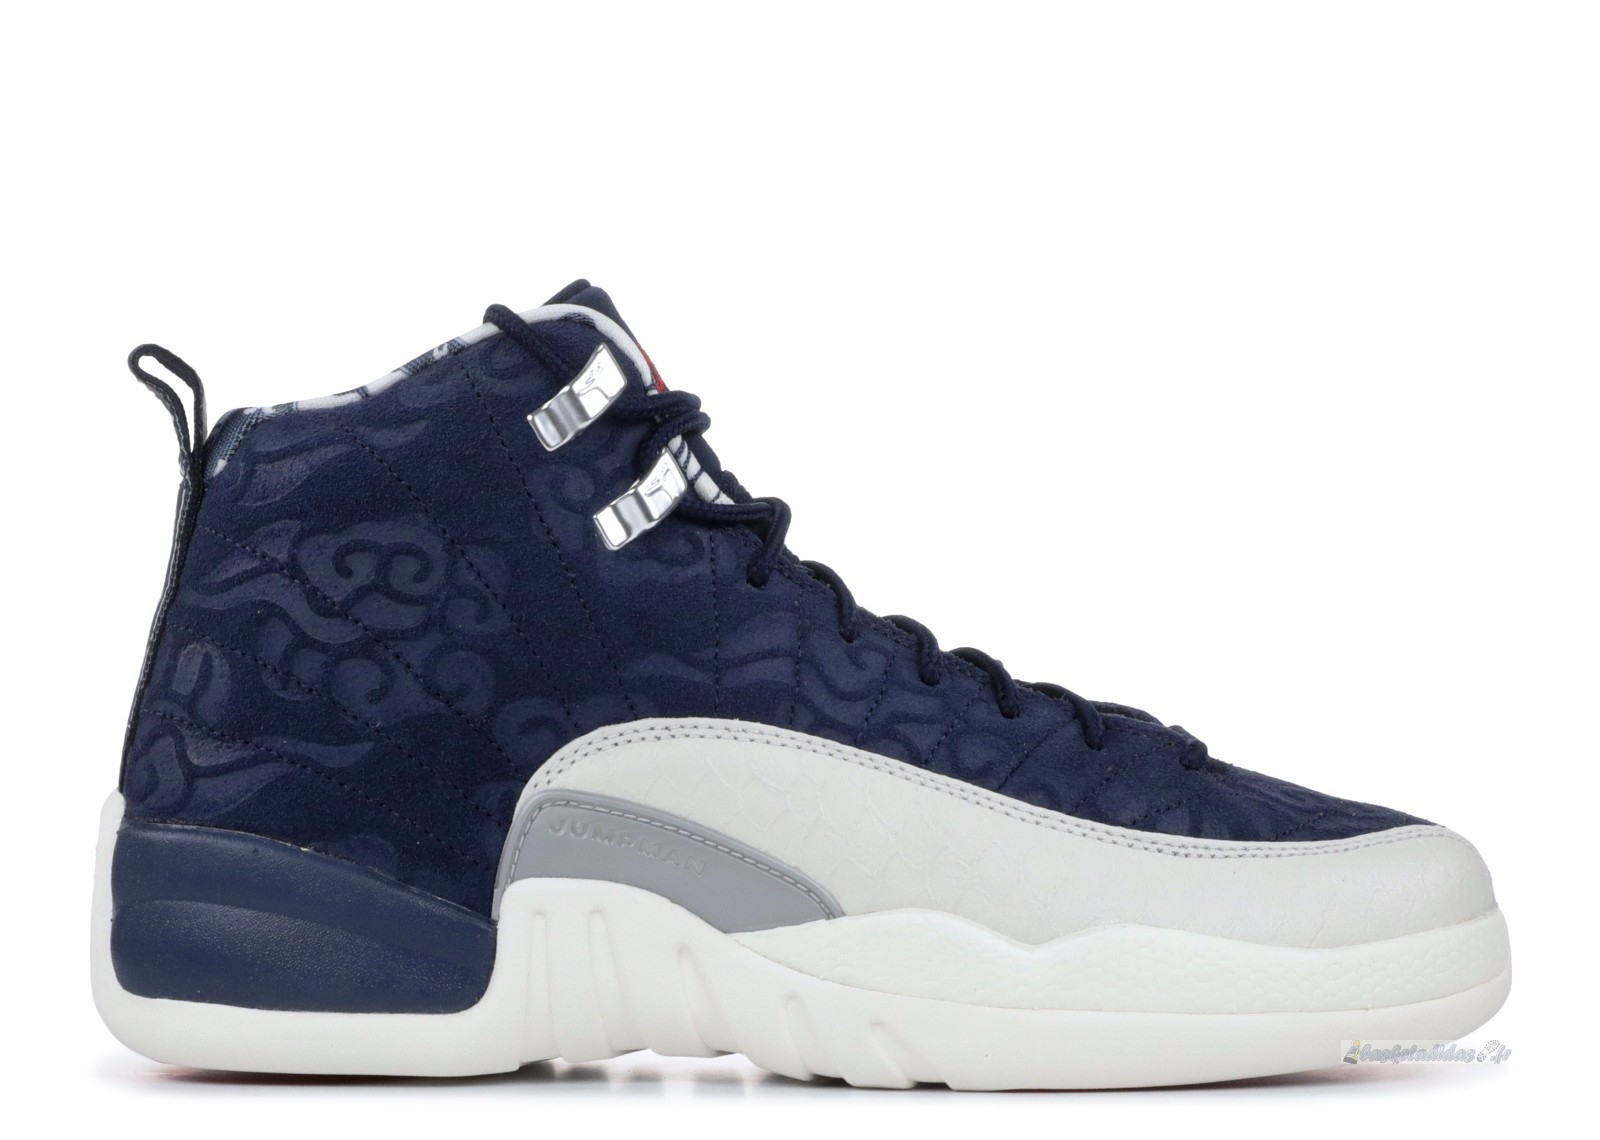 Chaussure de Basket Air Jordan 12 Retro Prm (Gs) Marine (bv8017-445)